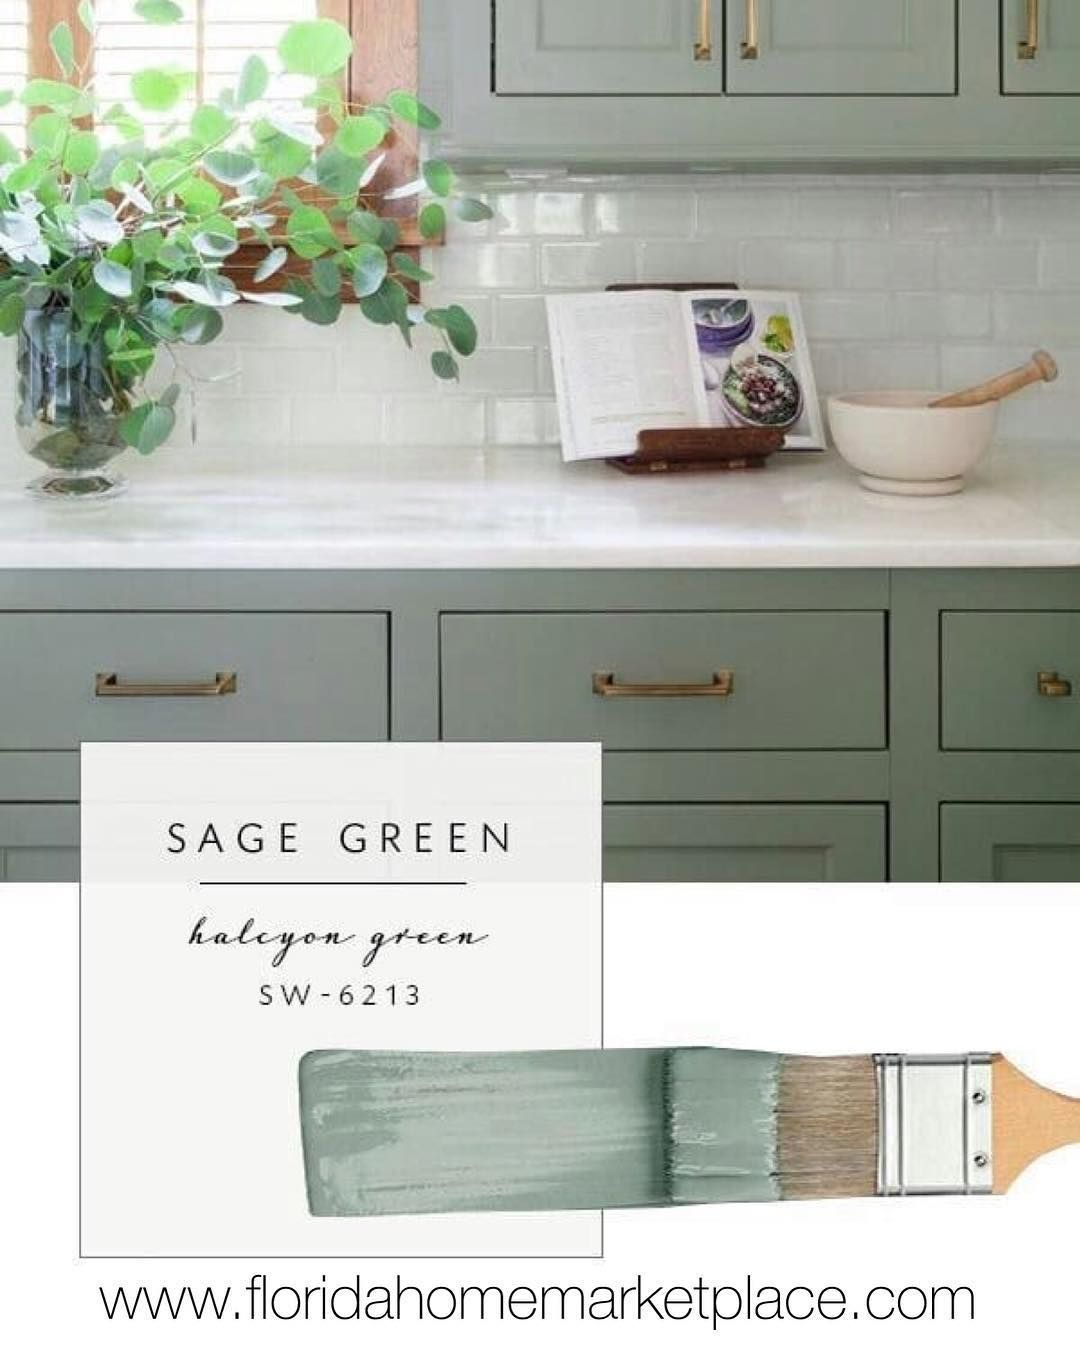 The Best Cabinets For Your Kitchen Kitchen Cabinet Colors Green Kitchen Cabinets Kitchen Cabinets Makeover